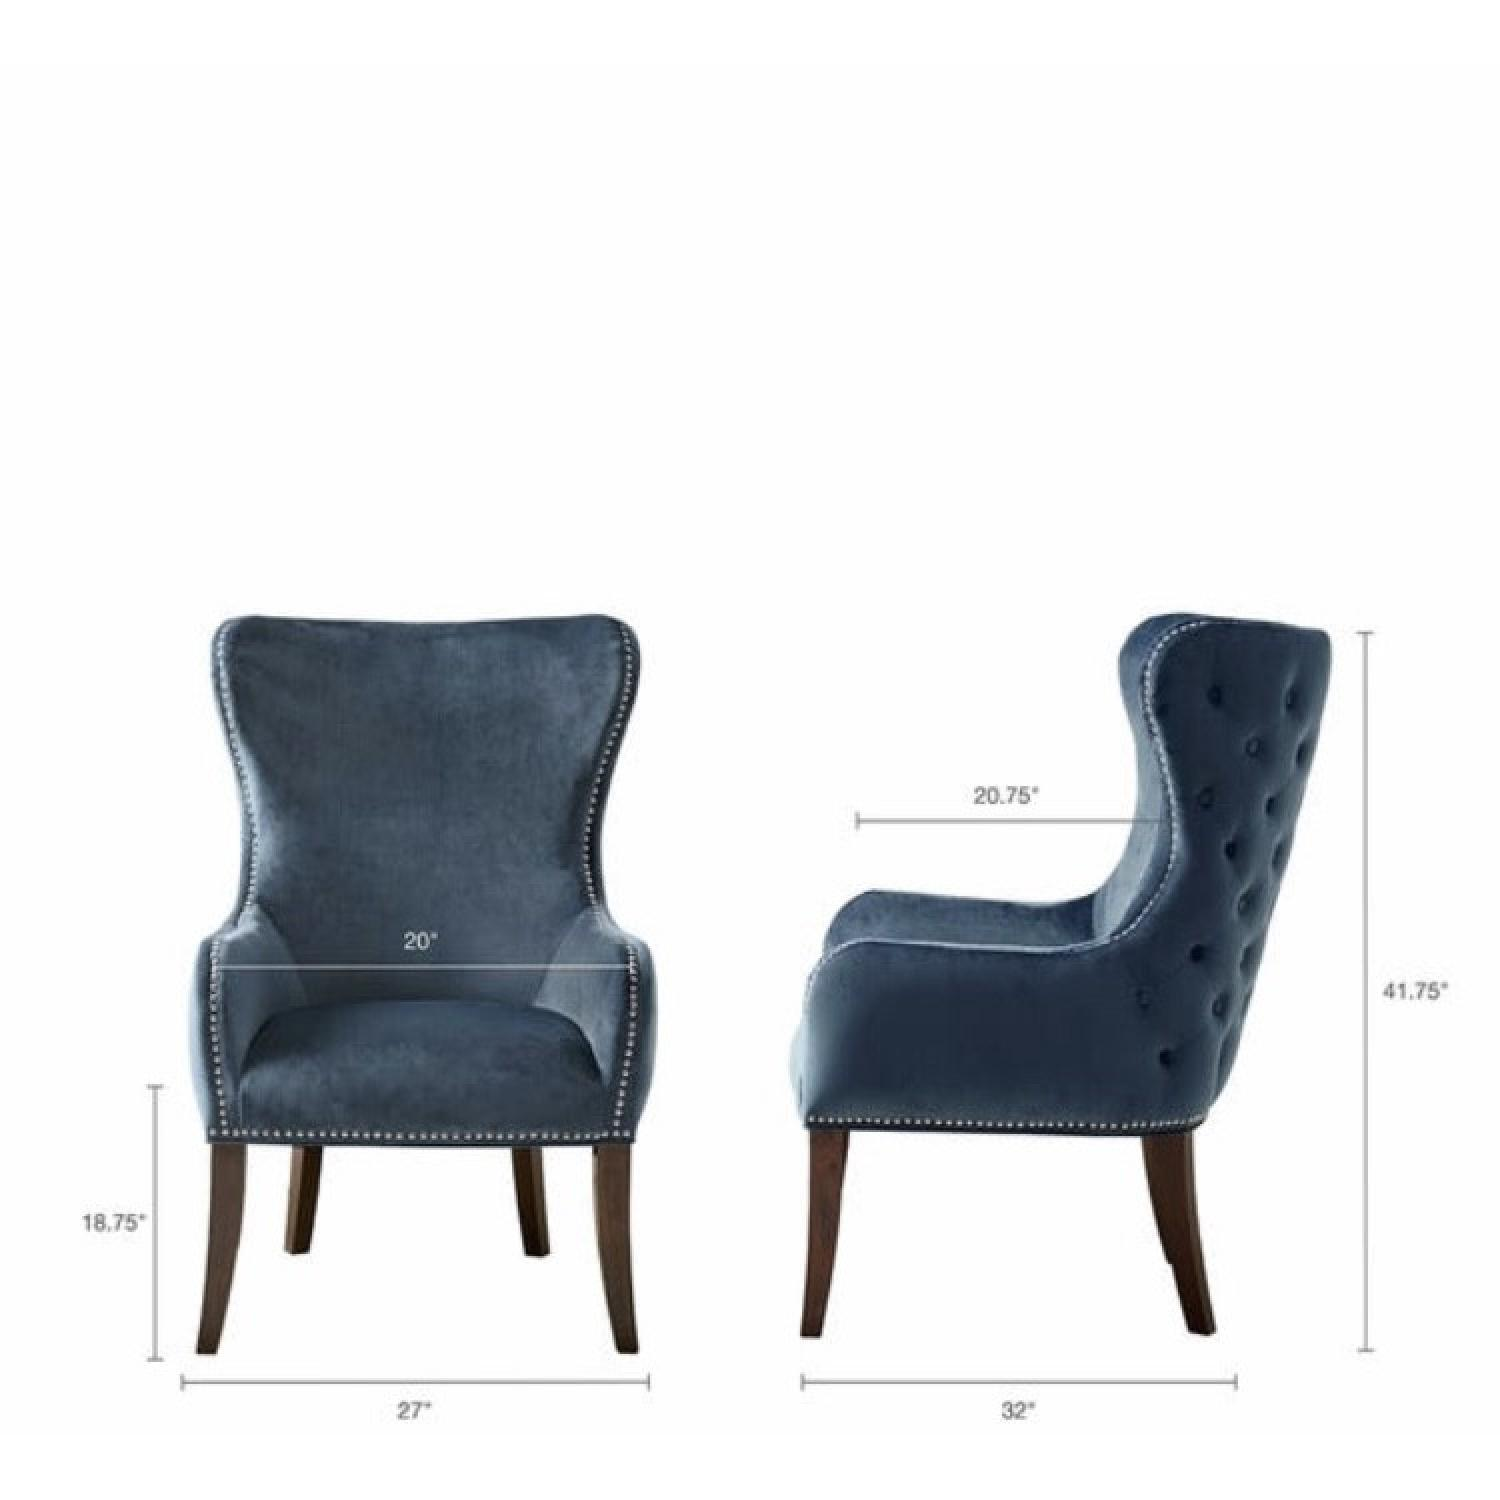 Madison Park Statement Armchairs - image-4